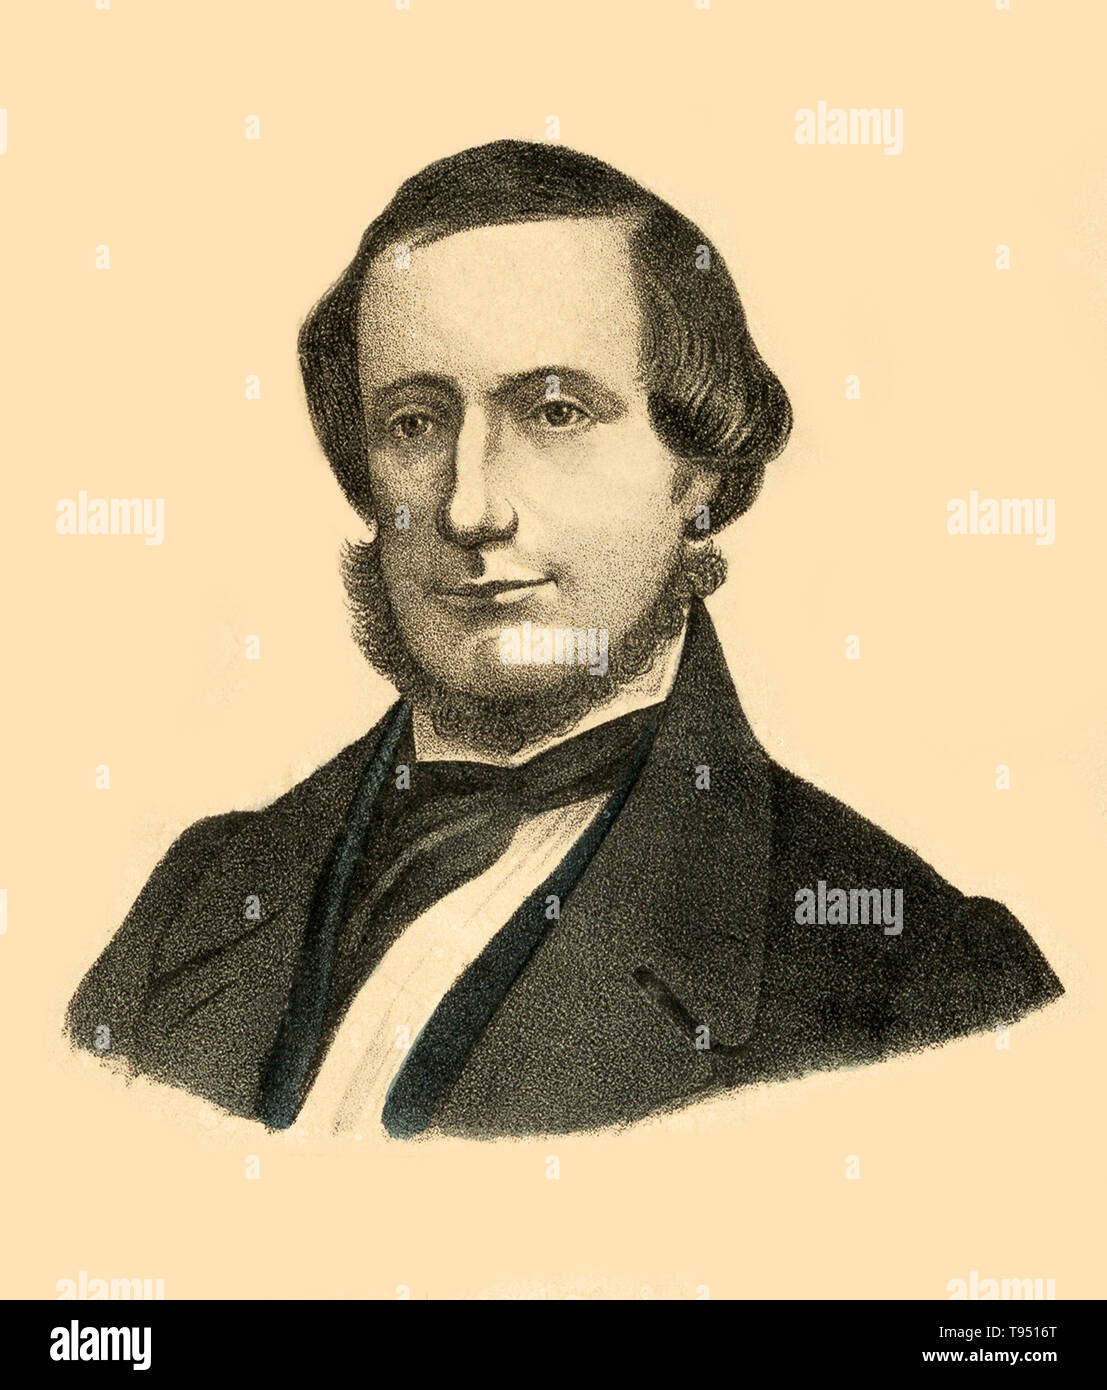 One of the 19th century's great technological achievements was to lay a telegraphic cable beneath the Atlantic, allowing messages to speed back and forth between North America and Europe in minutes, rather than ten or twelve days by steamer. An initially successful attempt in 1858, led by Cyrus W. Field (portrayed here) and financed by the Atlantic Telegraph Company, failed after three weeks. Two working cables were finally laid in July and September 1866, the result of repeated efforts by the indefatigable Field, a cadre of engineers, technicians, and sailors, two groups of financial backers, - Stock Image